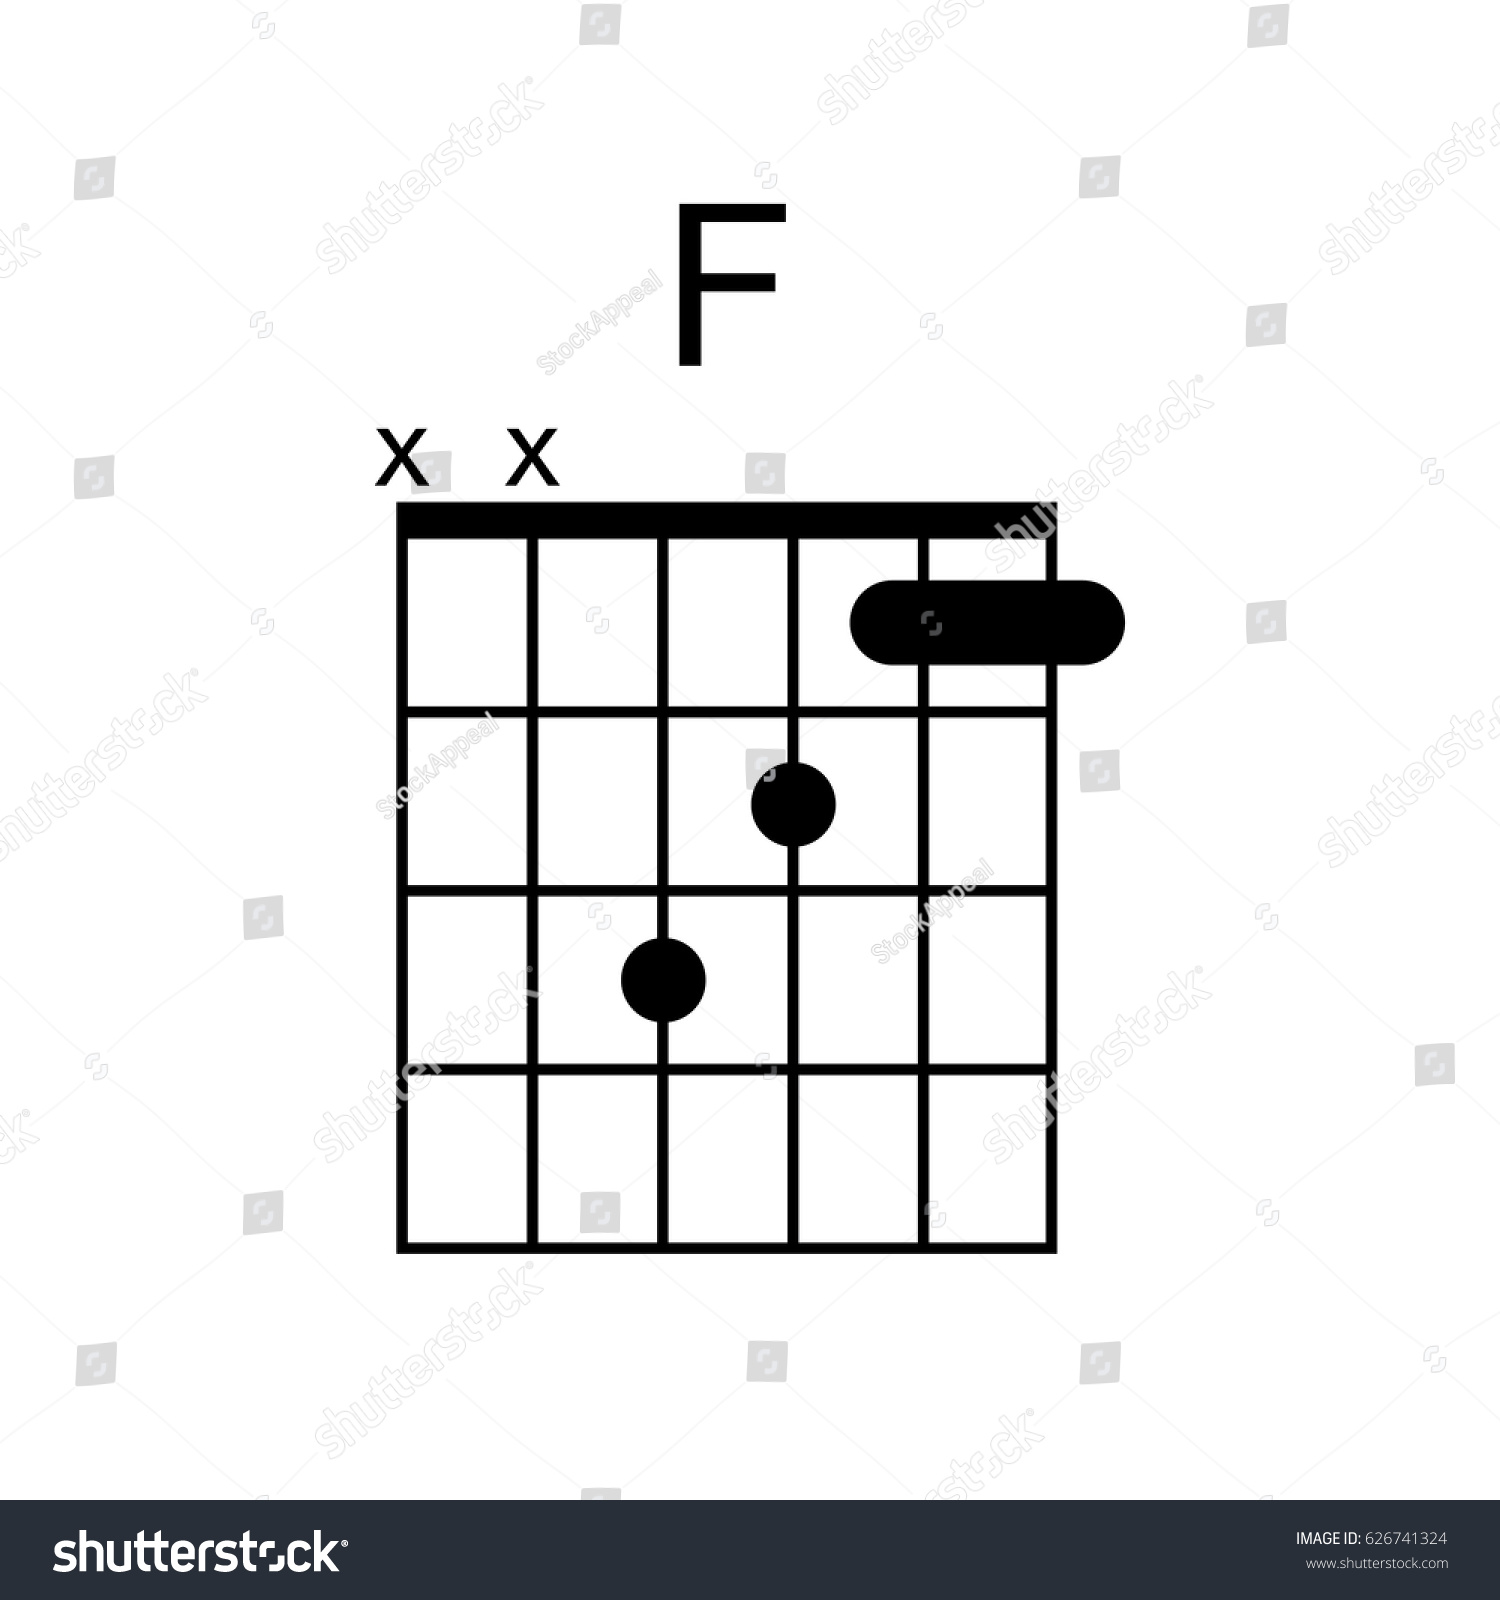 Vector Guitar Chord F Chord Diagram Stock Vector Royalty Free